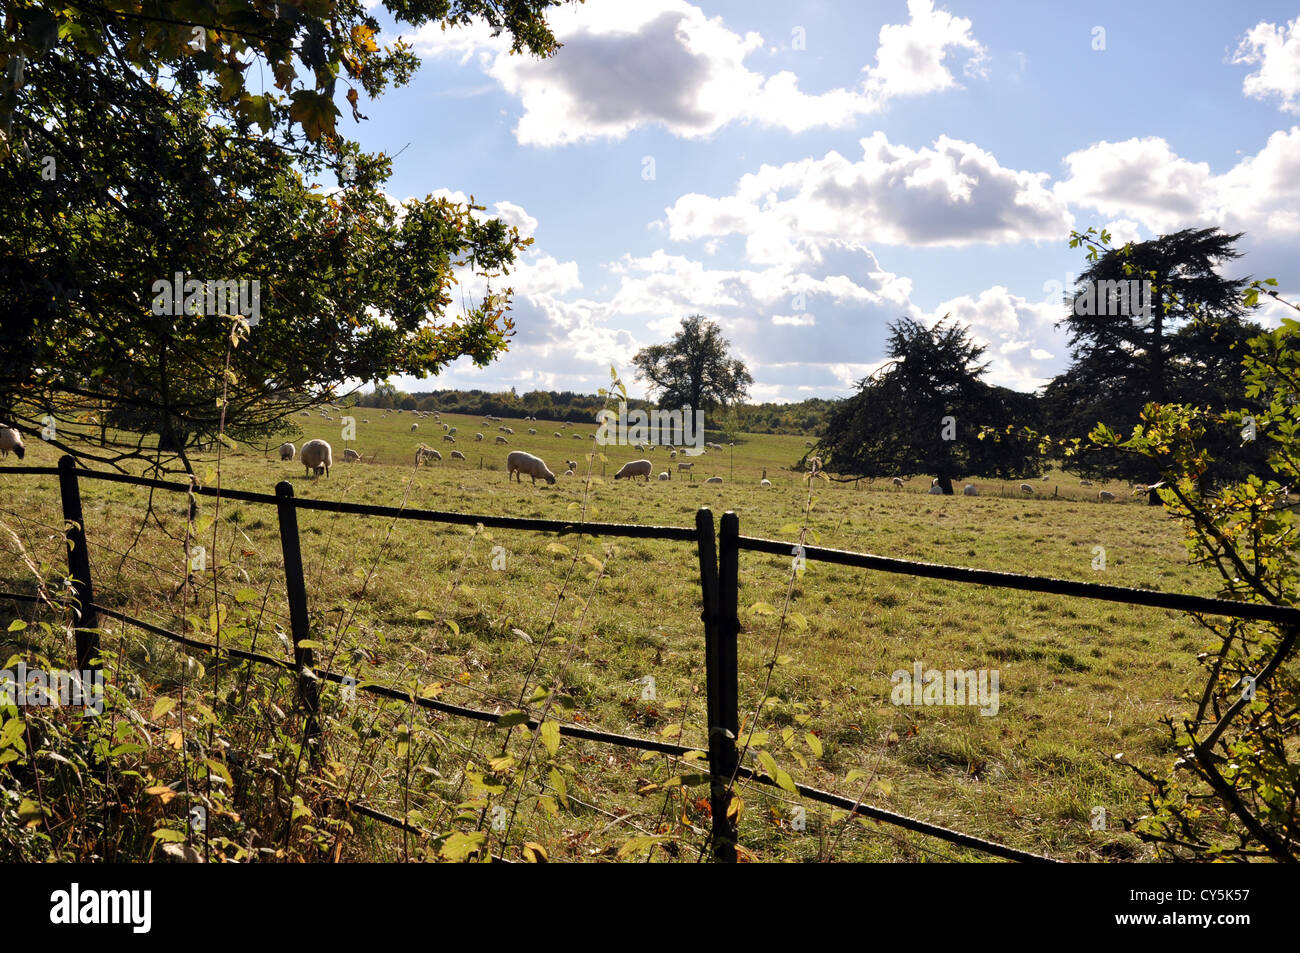 English countryside scene, mature trees framed by old iron fence looking over field with sheep grazing - Stock Image